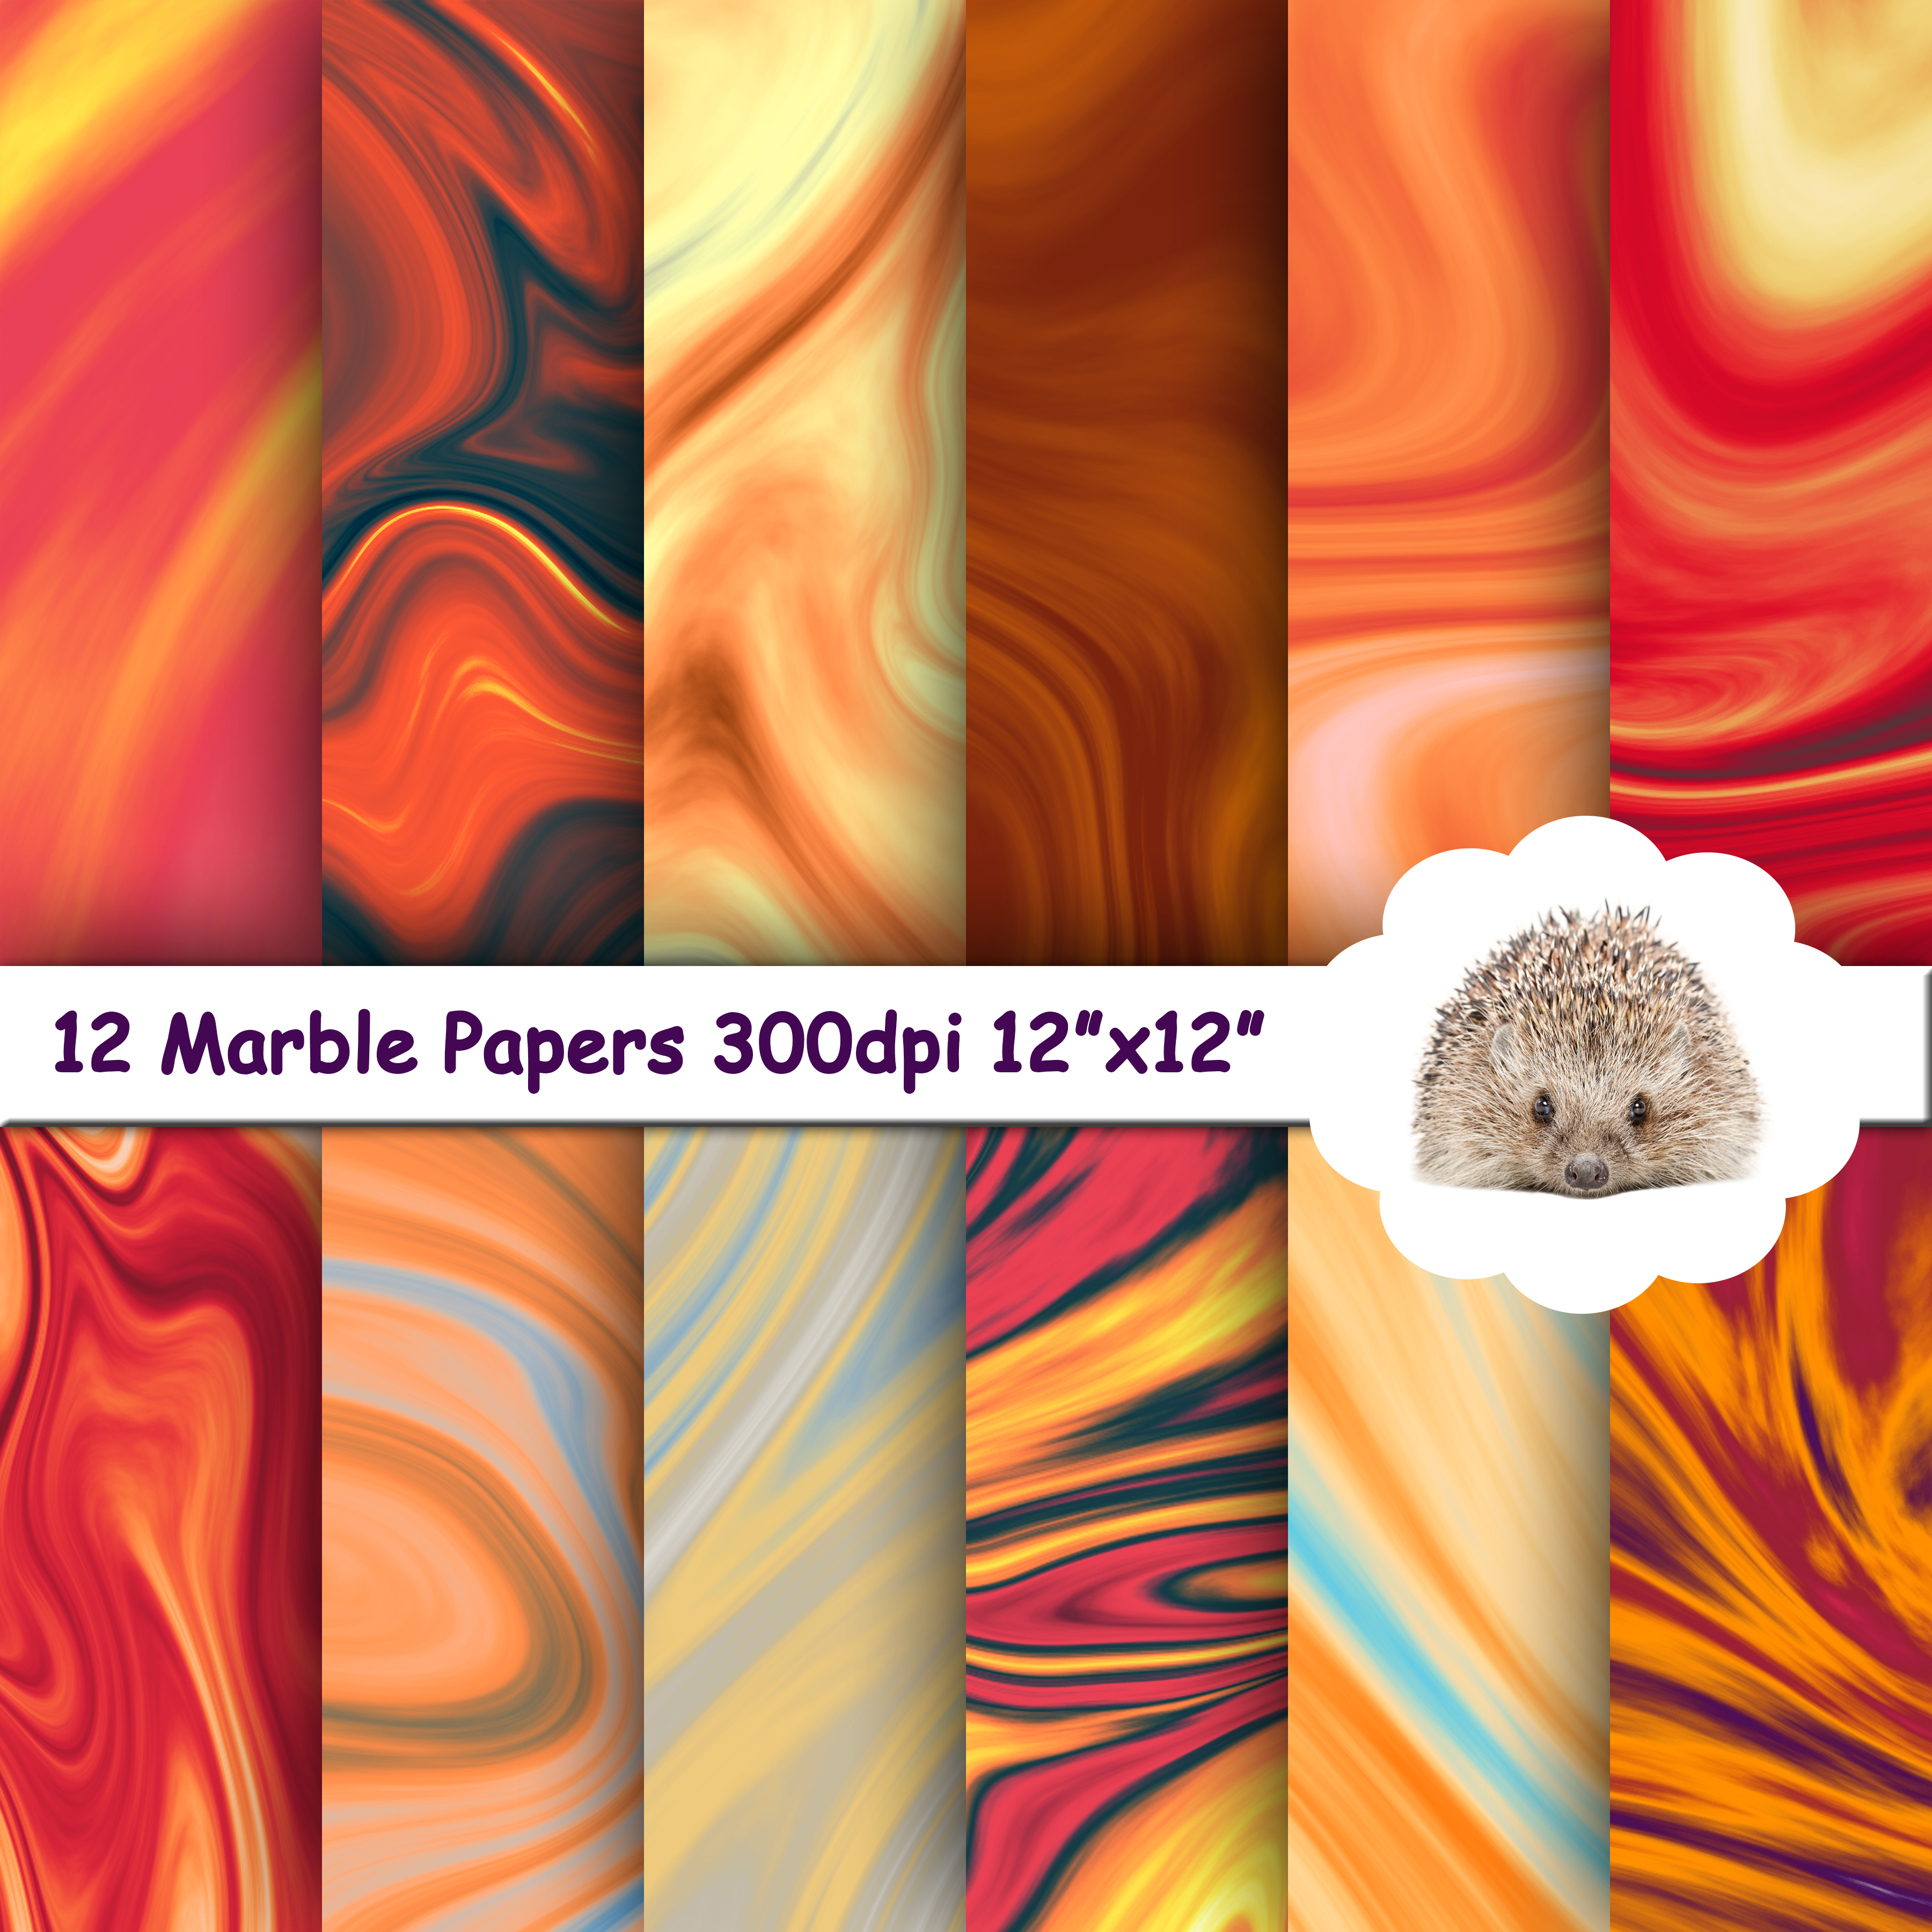 12 Orange Marble Textures / Backgrounds / Papers example image 1